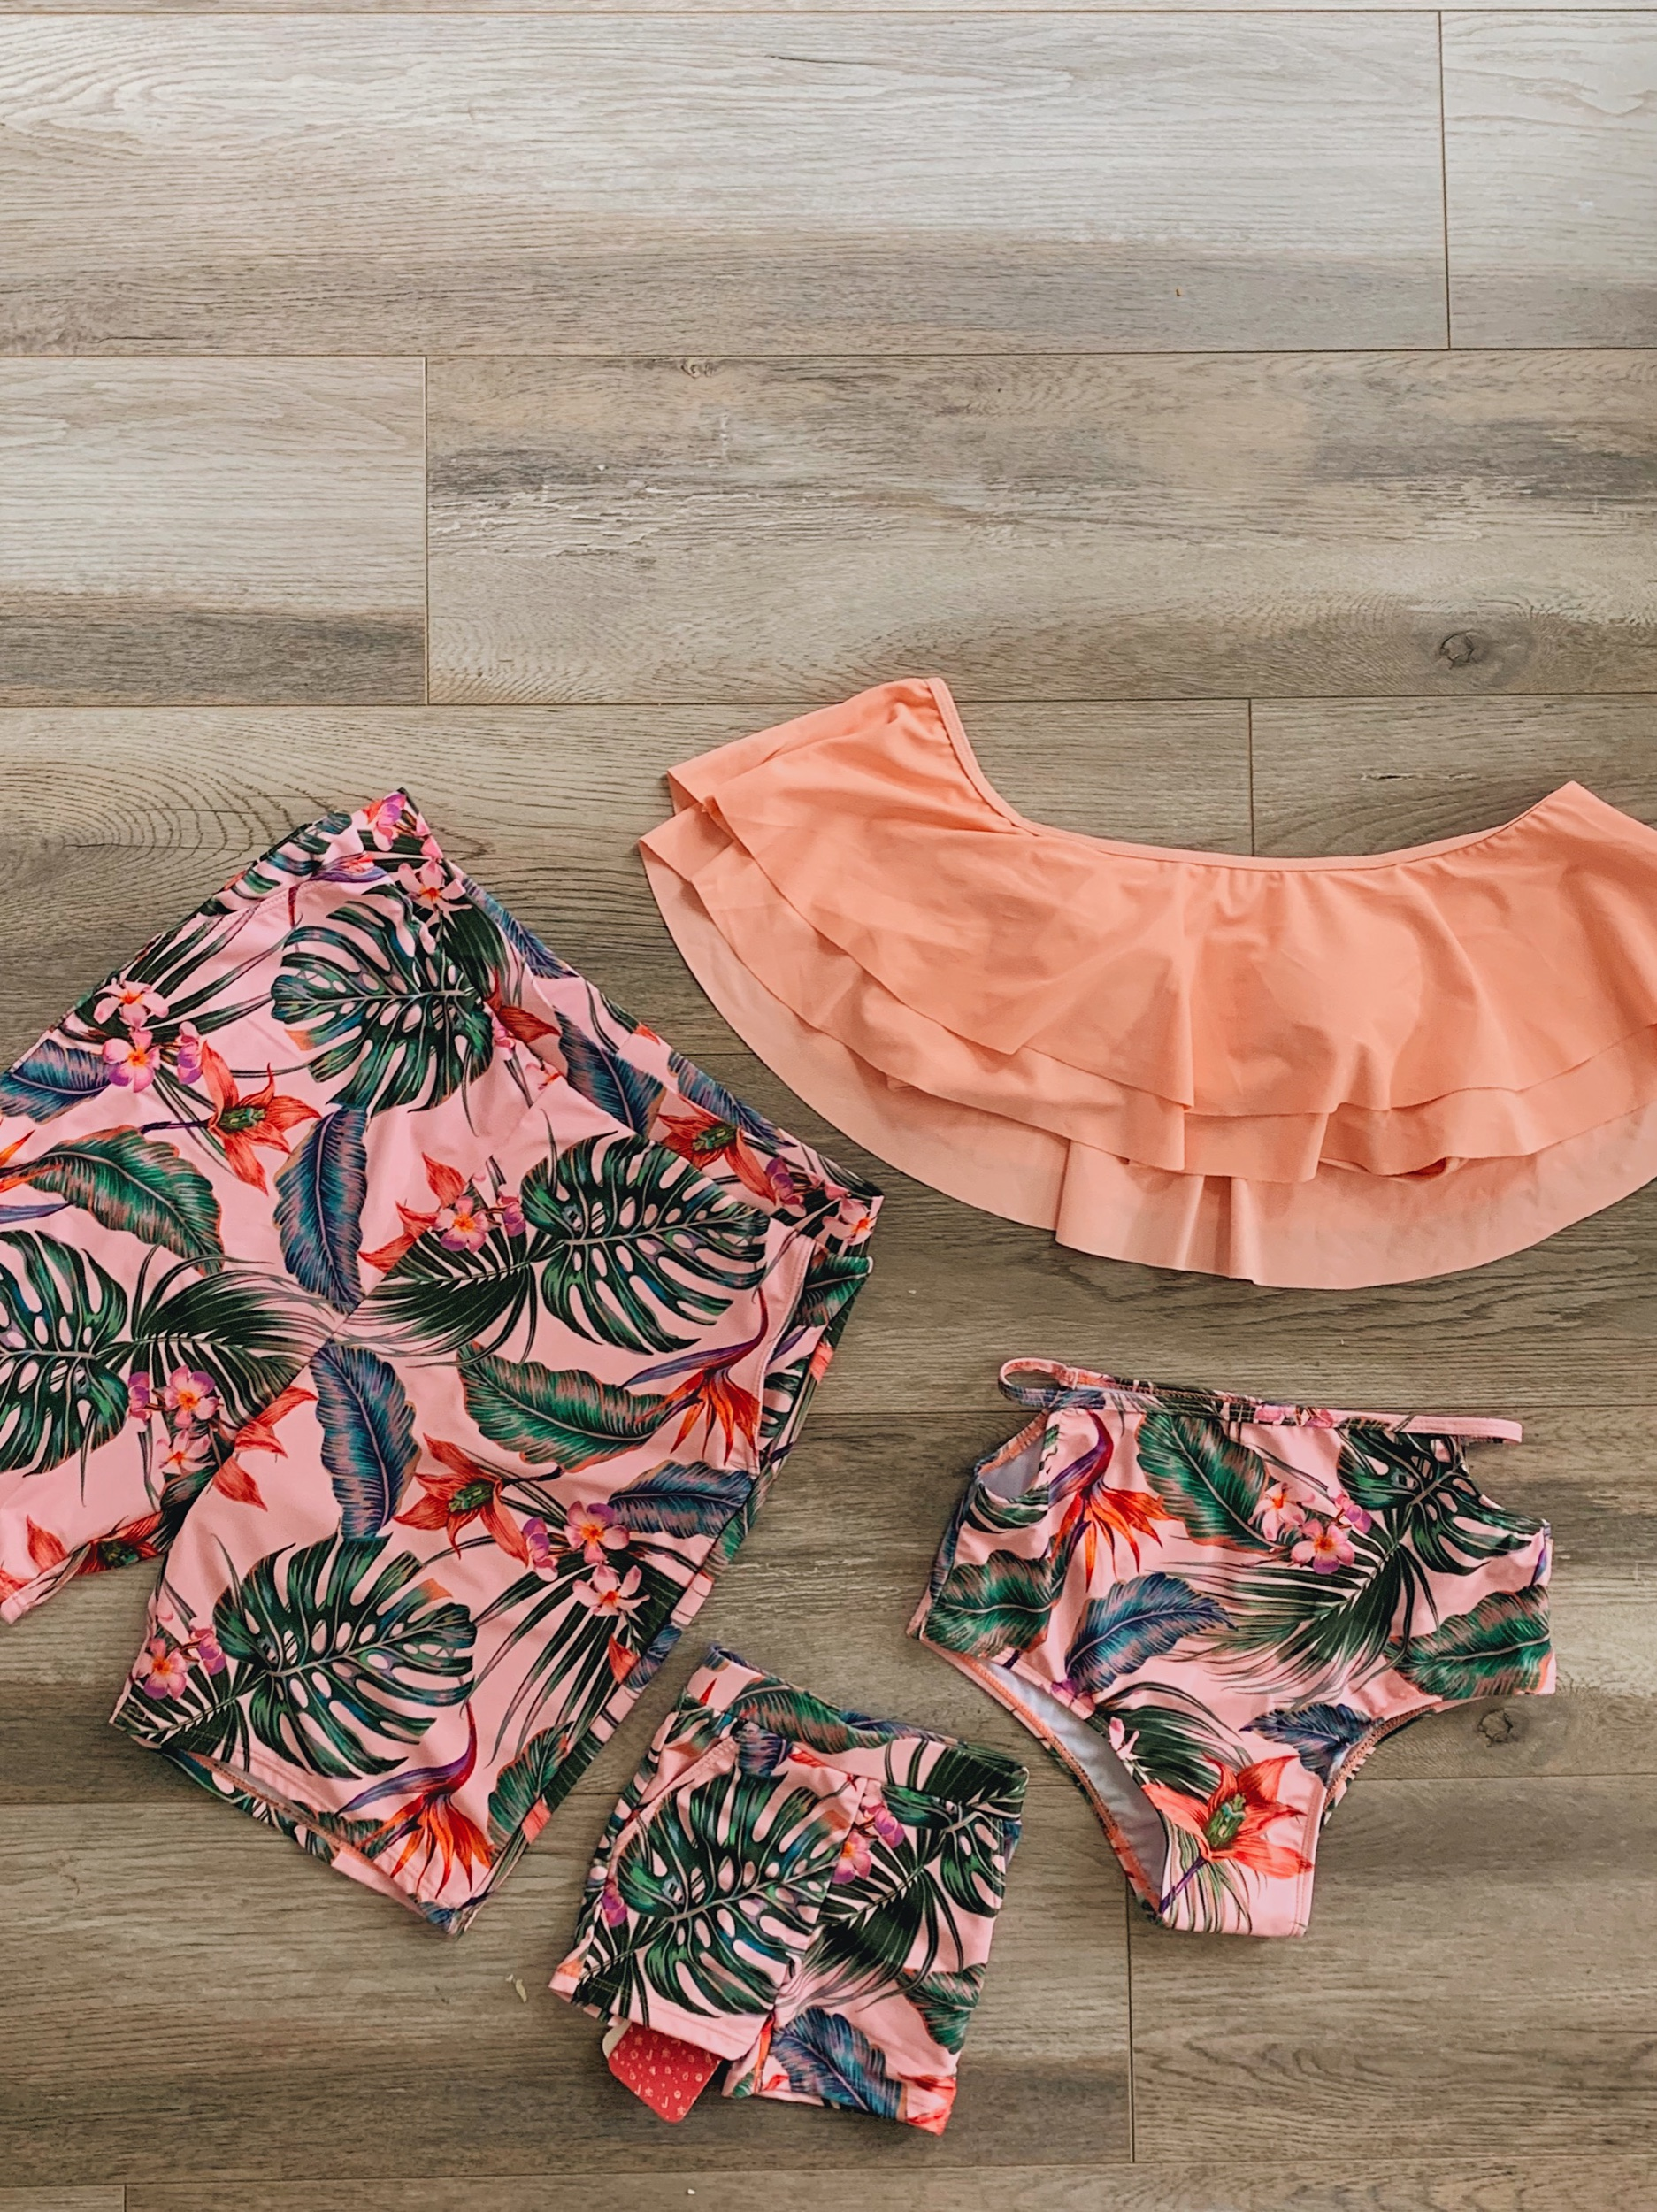 Matching swimwear under $20 you and your entire family needs!